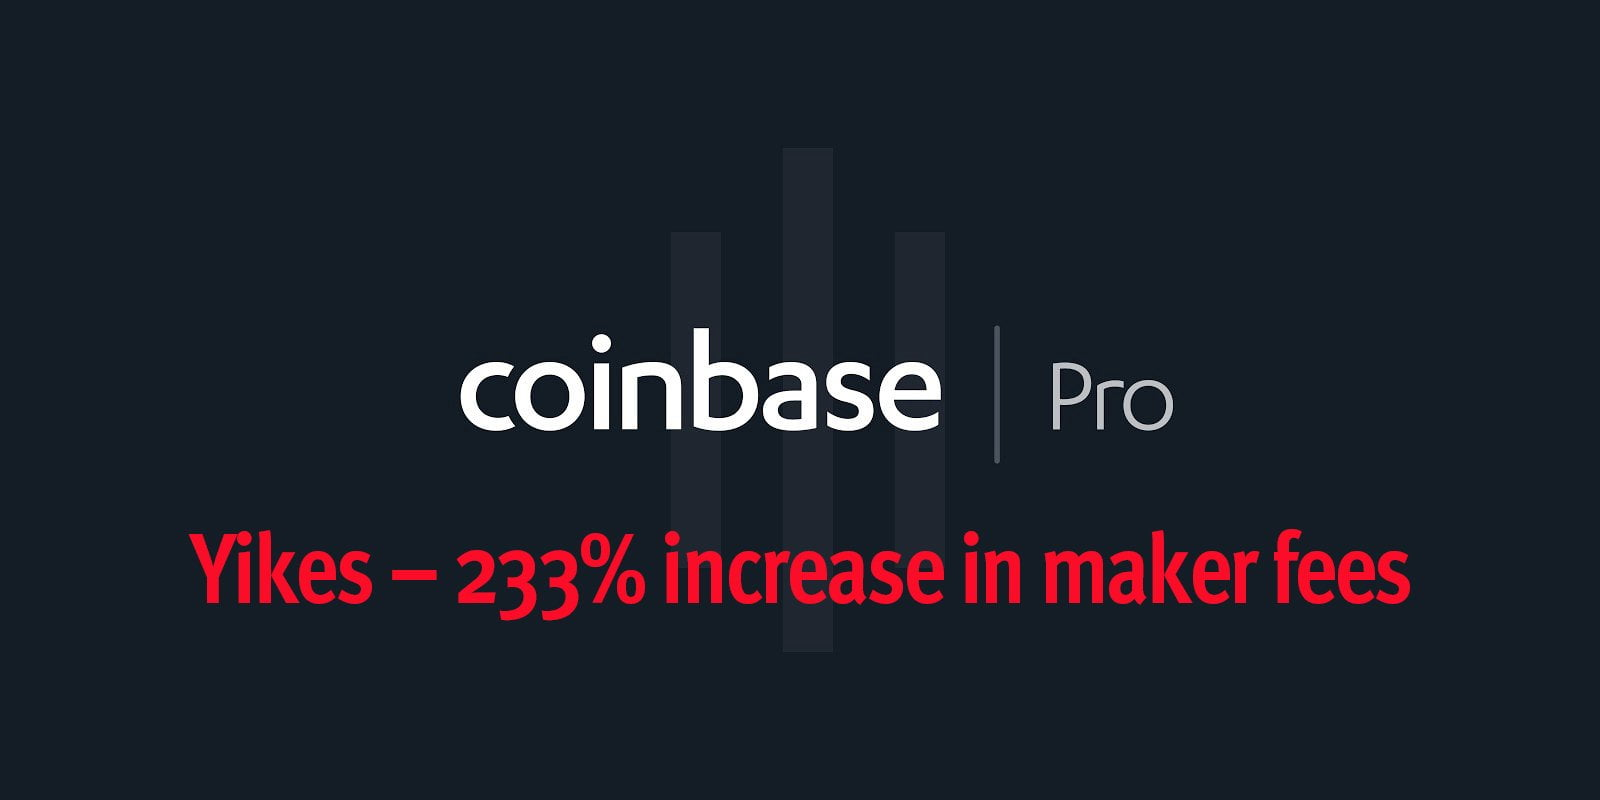 Coinbase Hikes Fees 233% On Pro Site Prompting Outrage From Traders 13